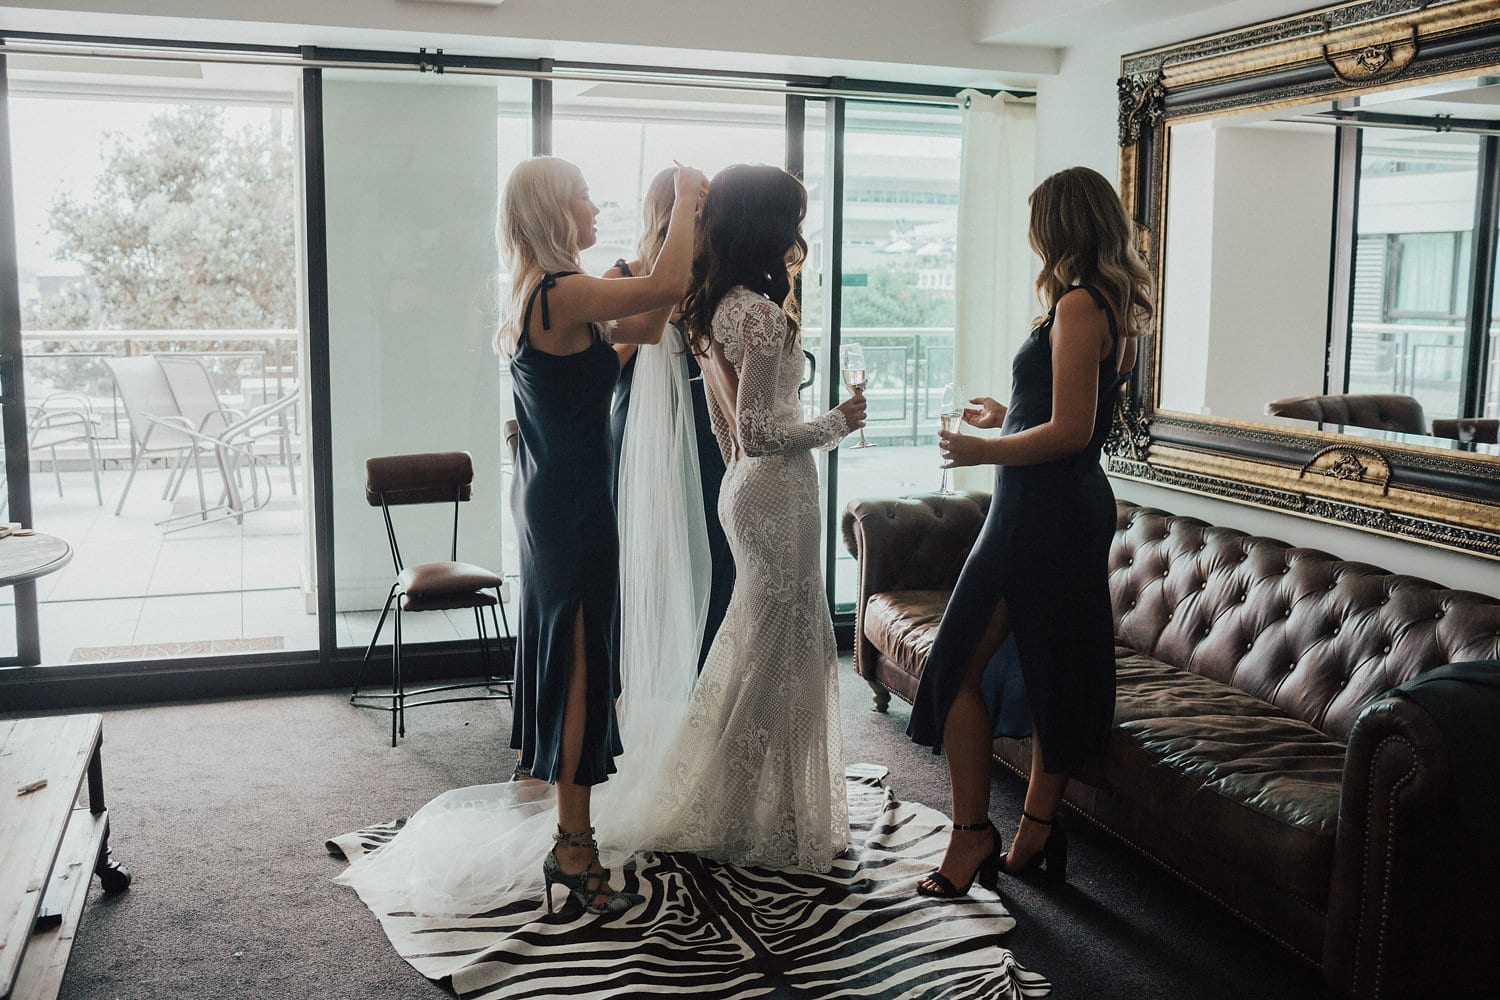 Real Weddings | Vinka Design | Real Brides Wearing Vinka Gowns | Nicole and Hayden - Nicole and bridesmaids attending in living room